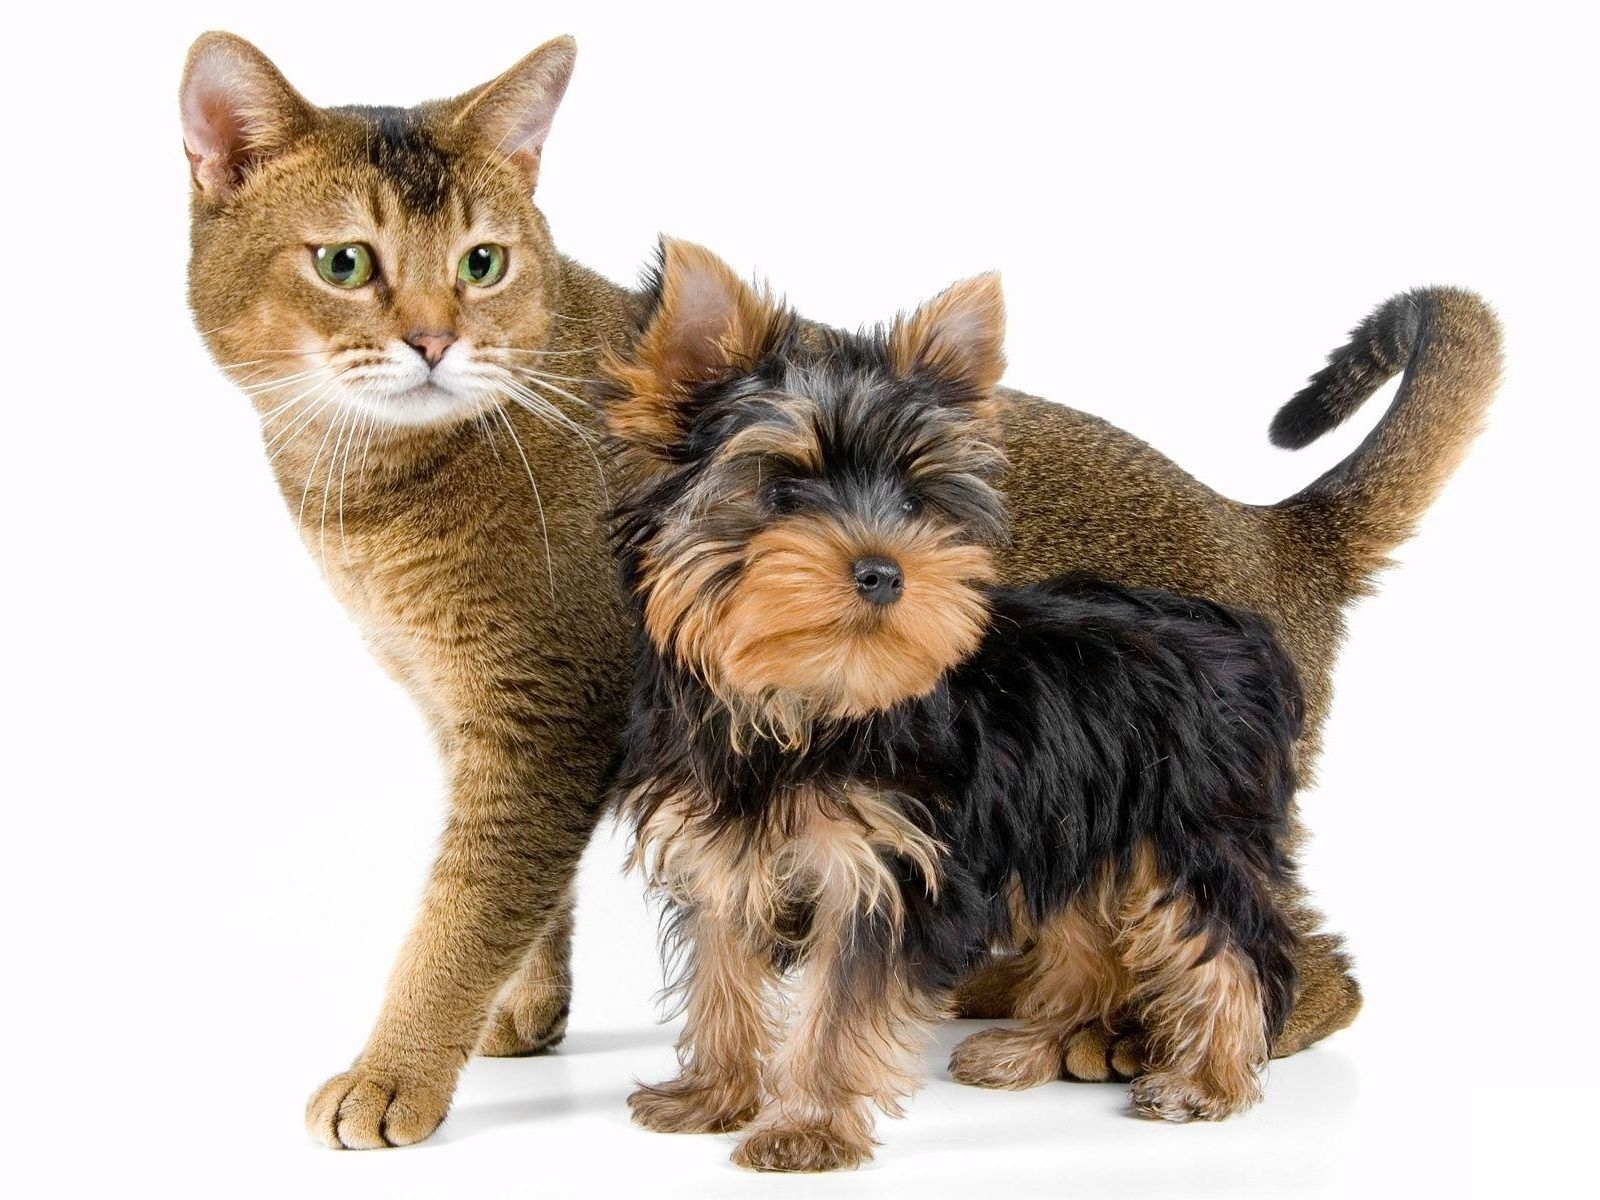 Yorkshire Terrier dog and cat wallpaper